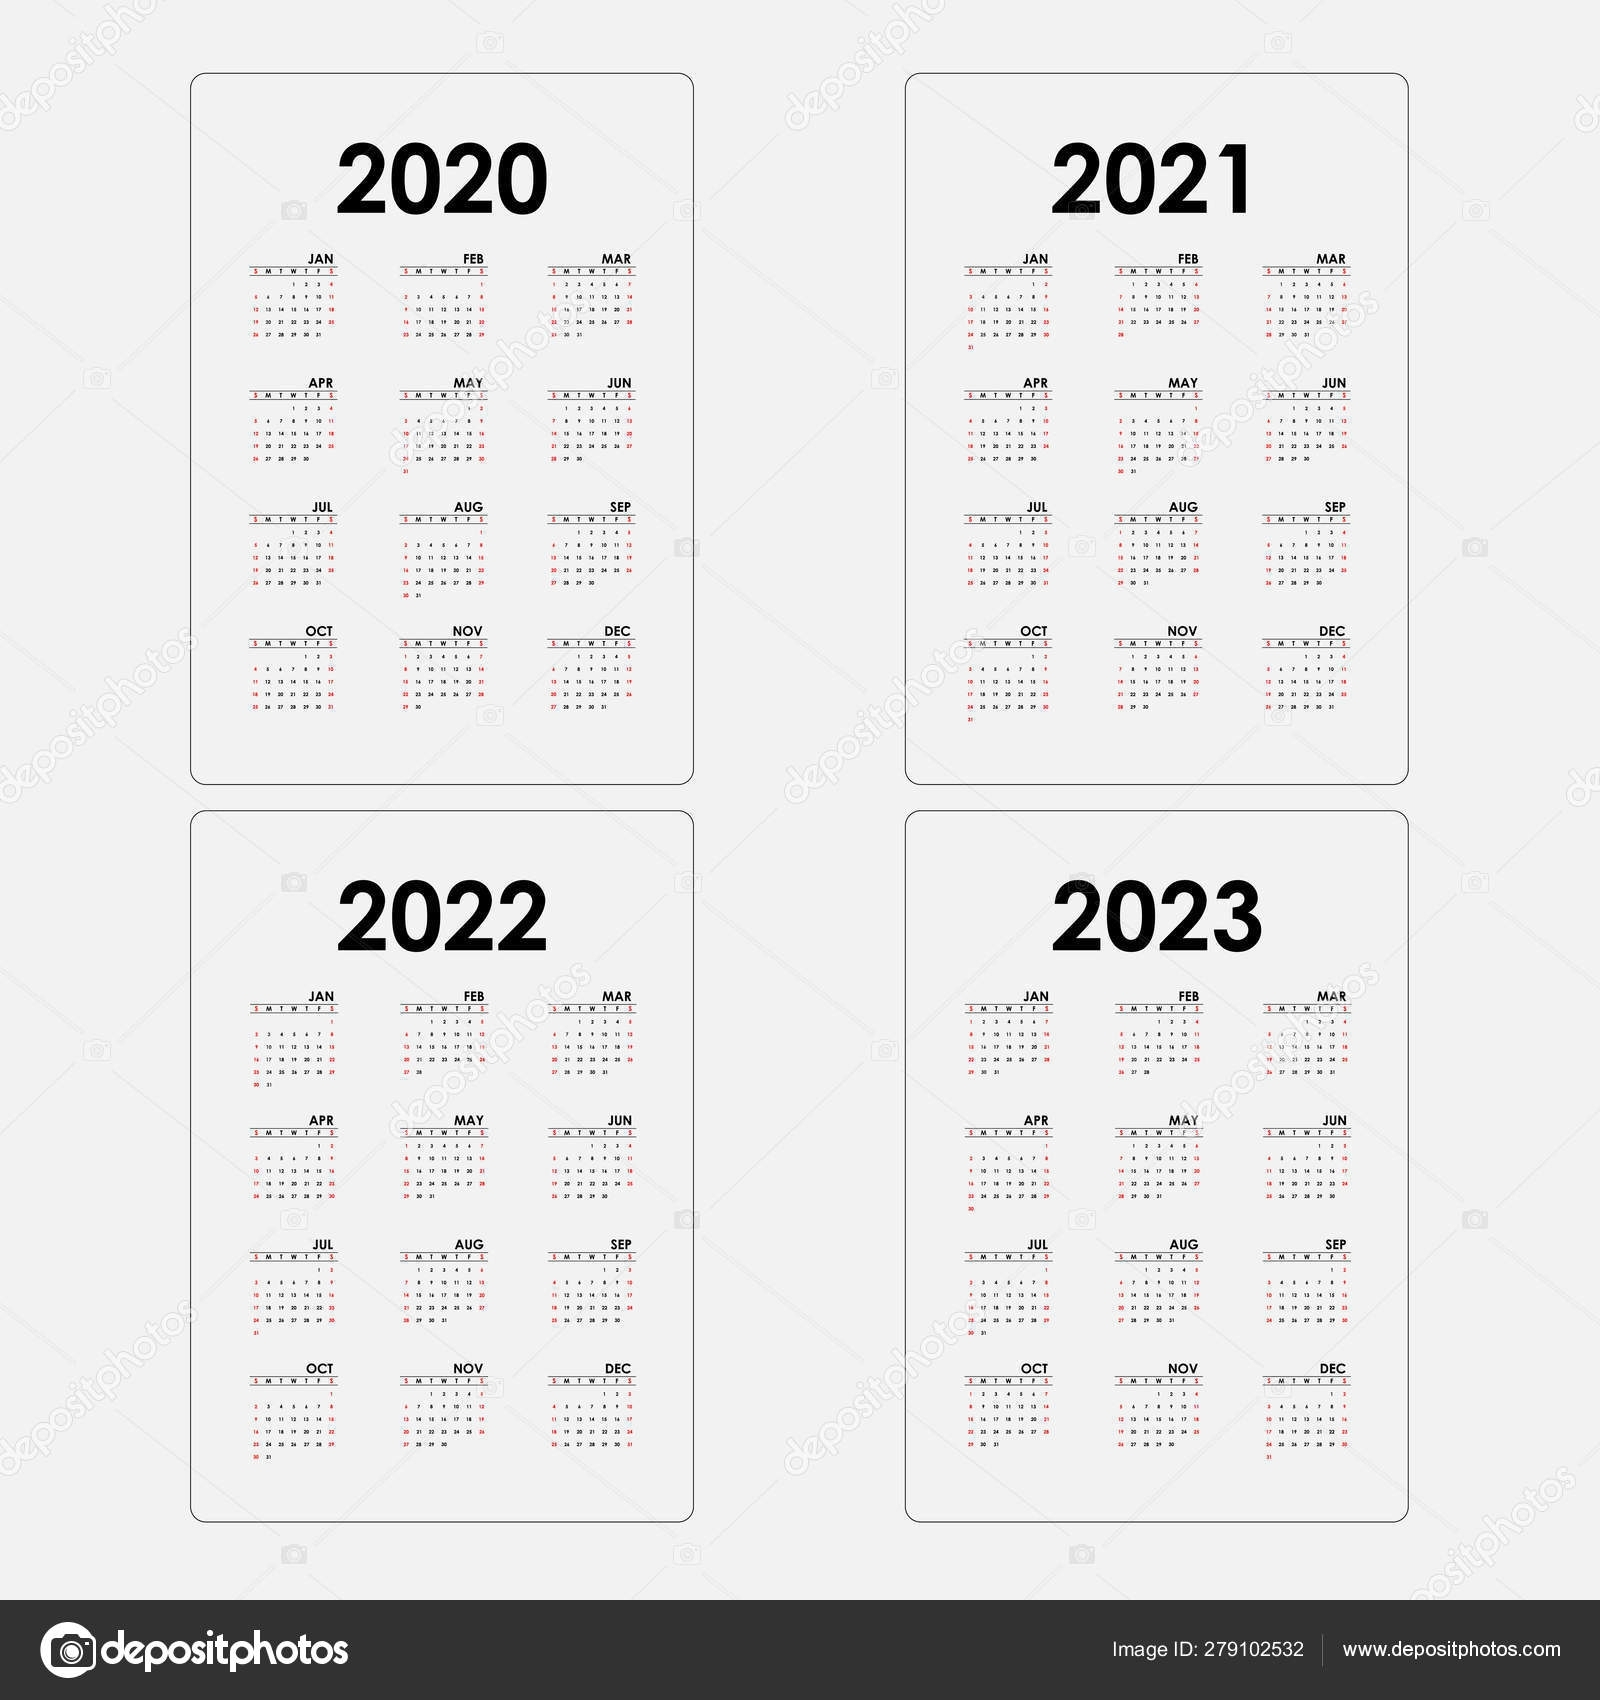 Calendar 2020, 2021,2022 And 2023 Calendar Template.yearly Calen 279102532 throughout Yearly 2019 2020 2021 2022 2023